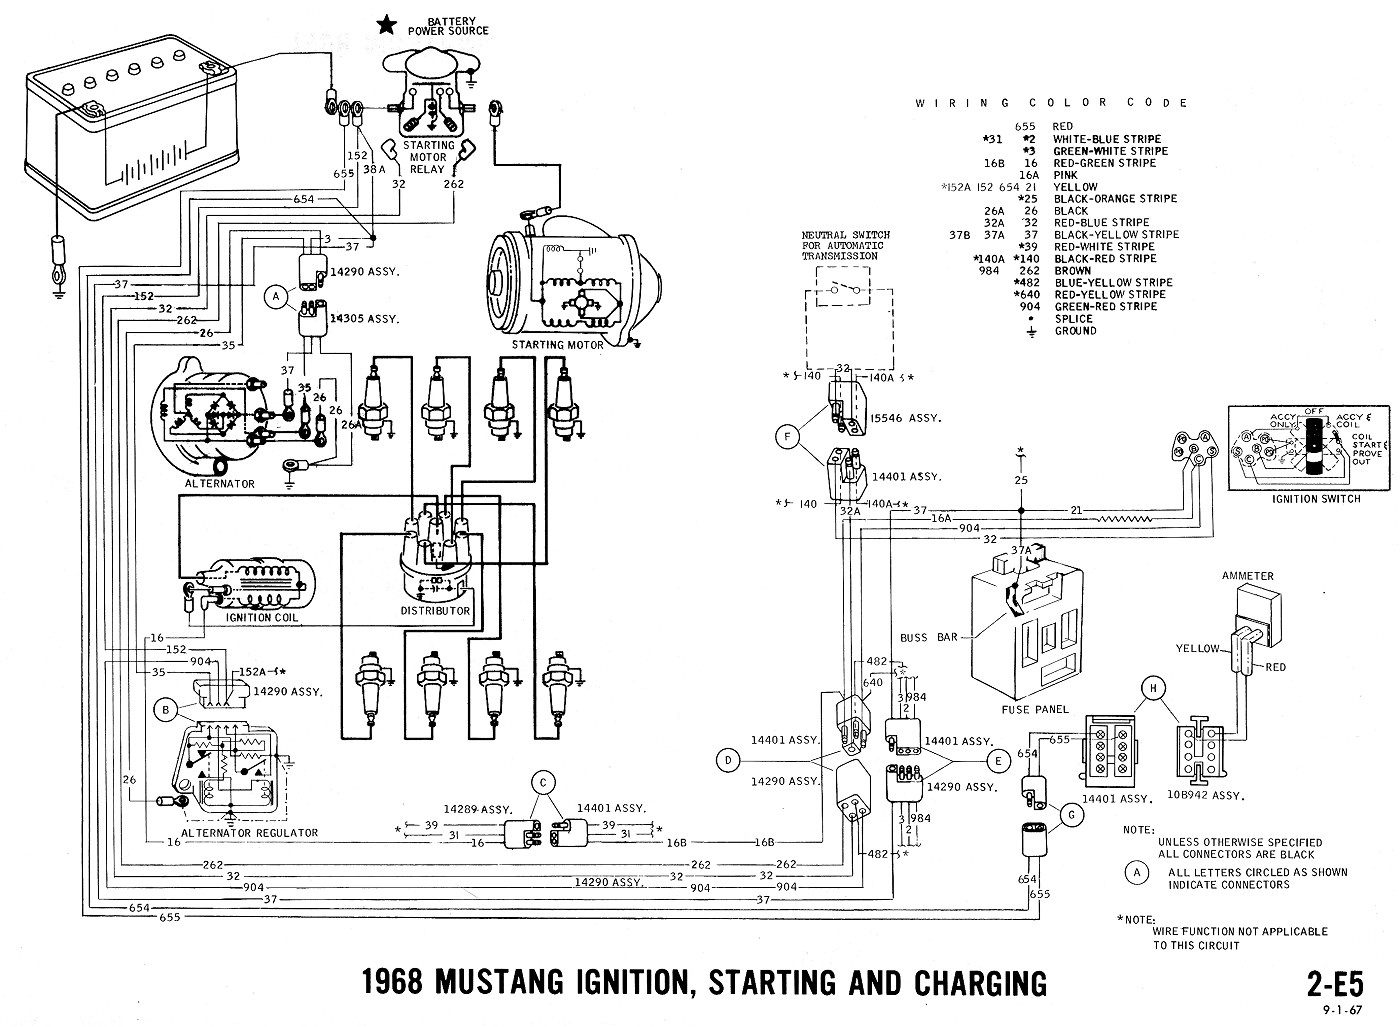 1968 Mustang Wiring Diagrams Evolving Software. Charging Starting. Wiring. 1969 Mustang Engine Vacuum Diagram At Scoala.co